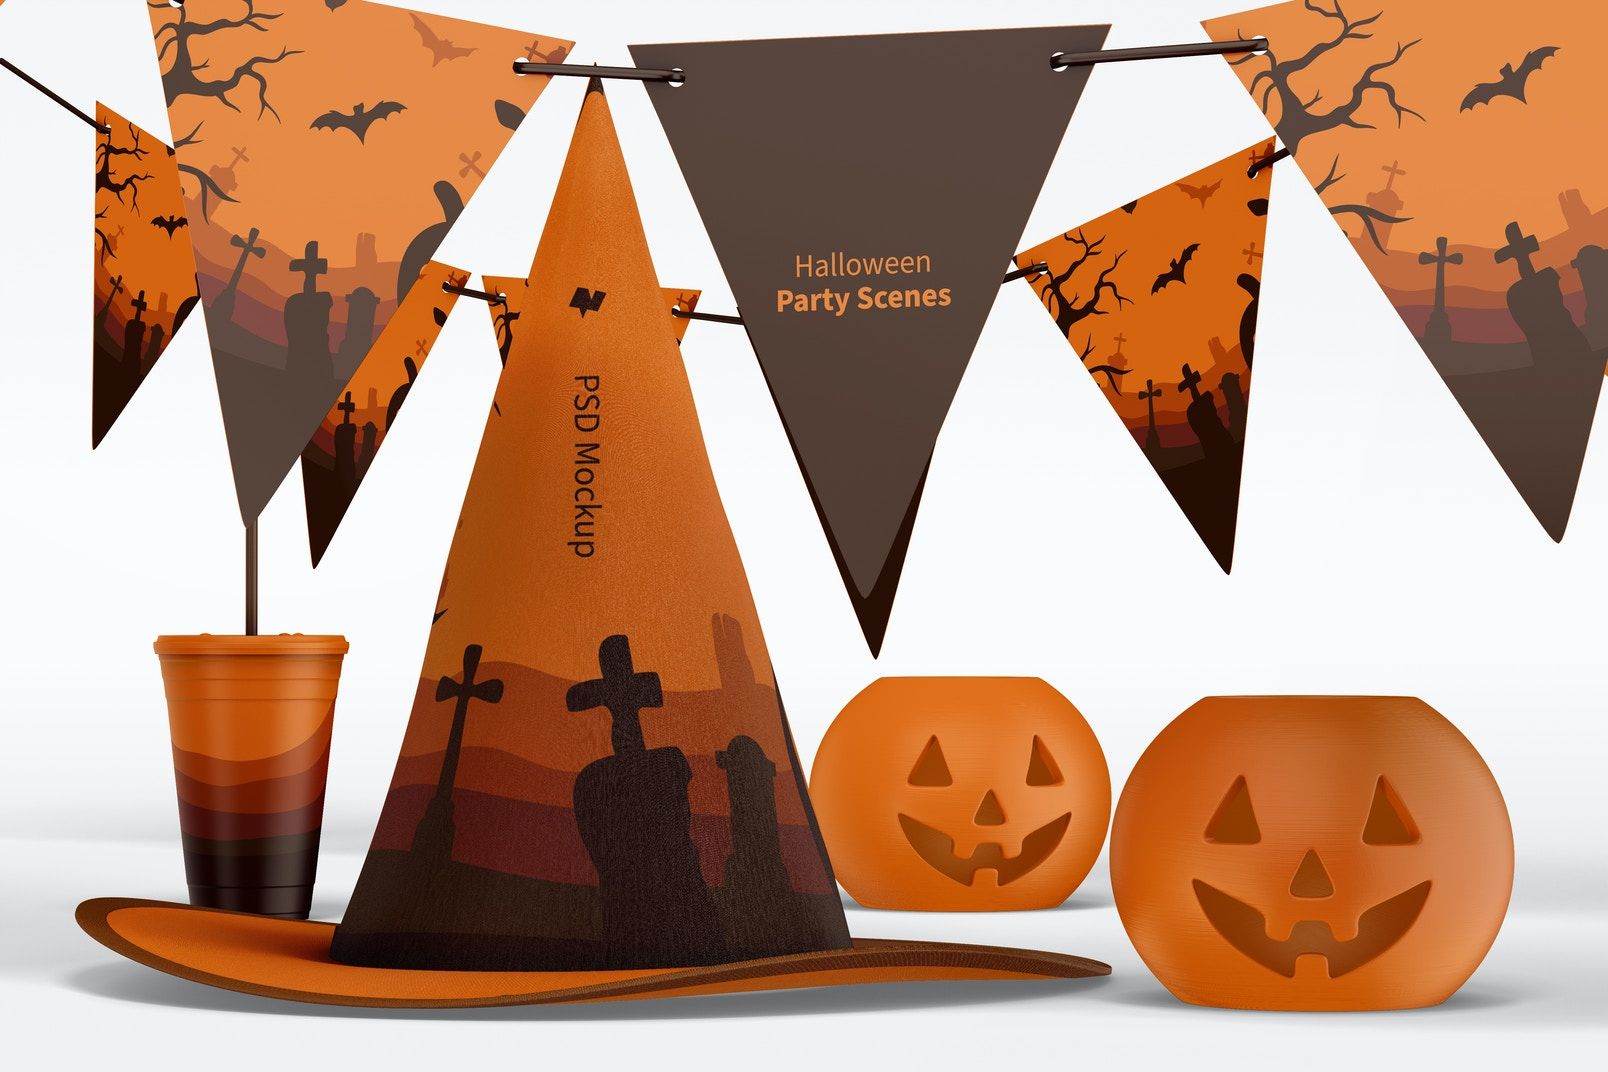 Halloween Party Scene Mockup, Front View 02